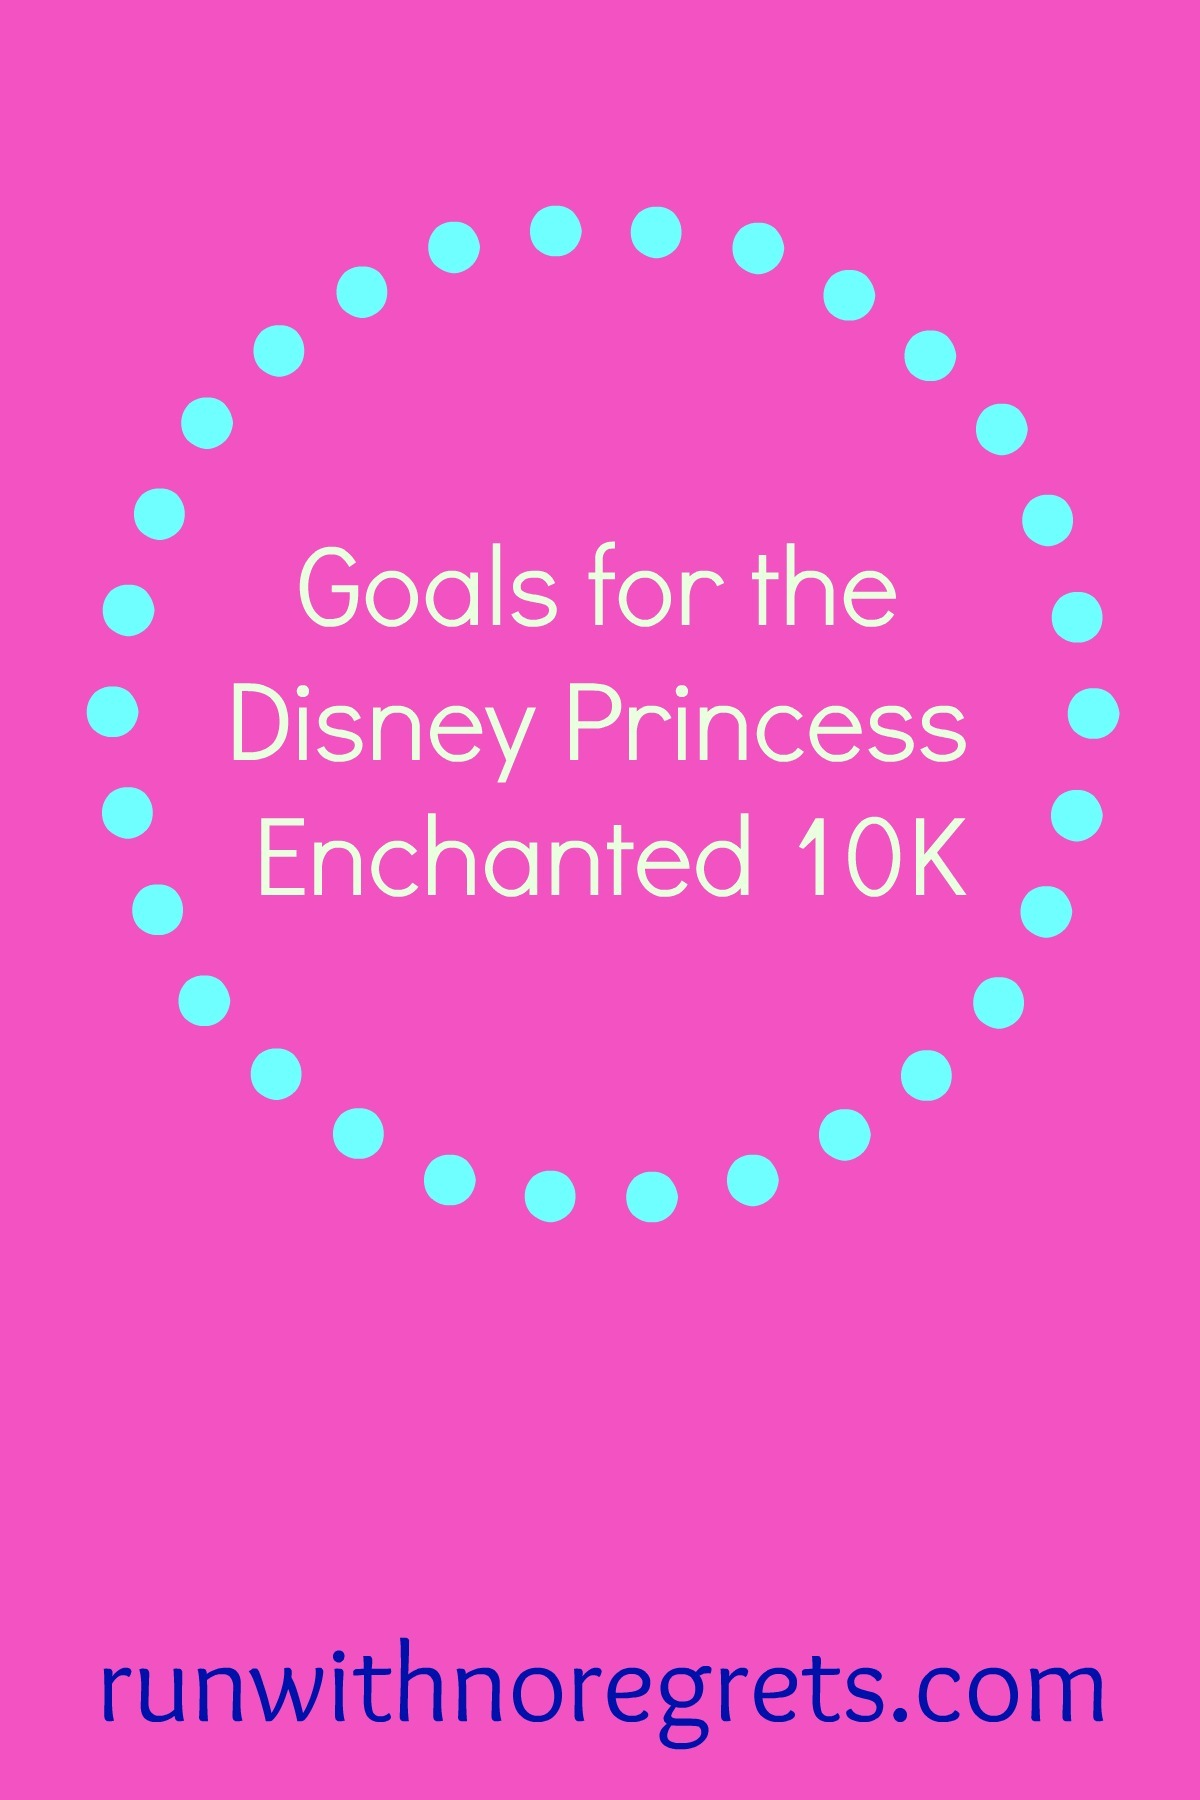 For the first time, I'm doing a runDisney event - Disney Princess! I'm sharing my goals for the Enchanted 10K - check it out and more race training at runwithnoregrets.com!